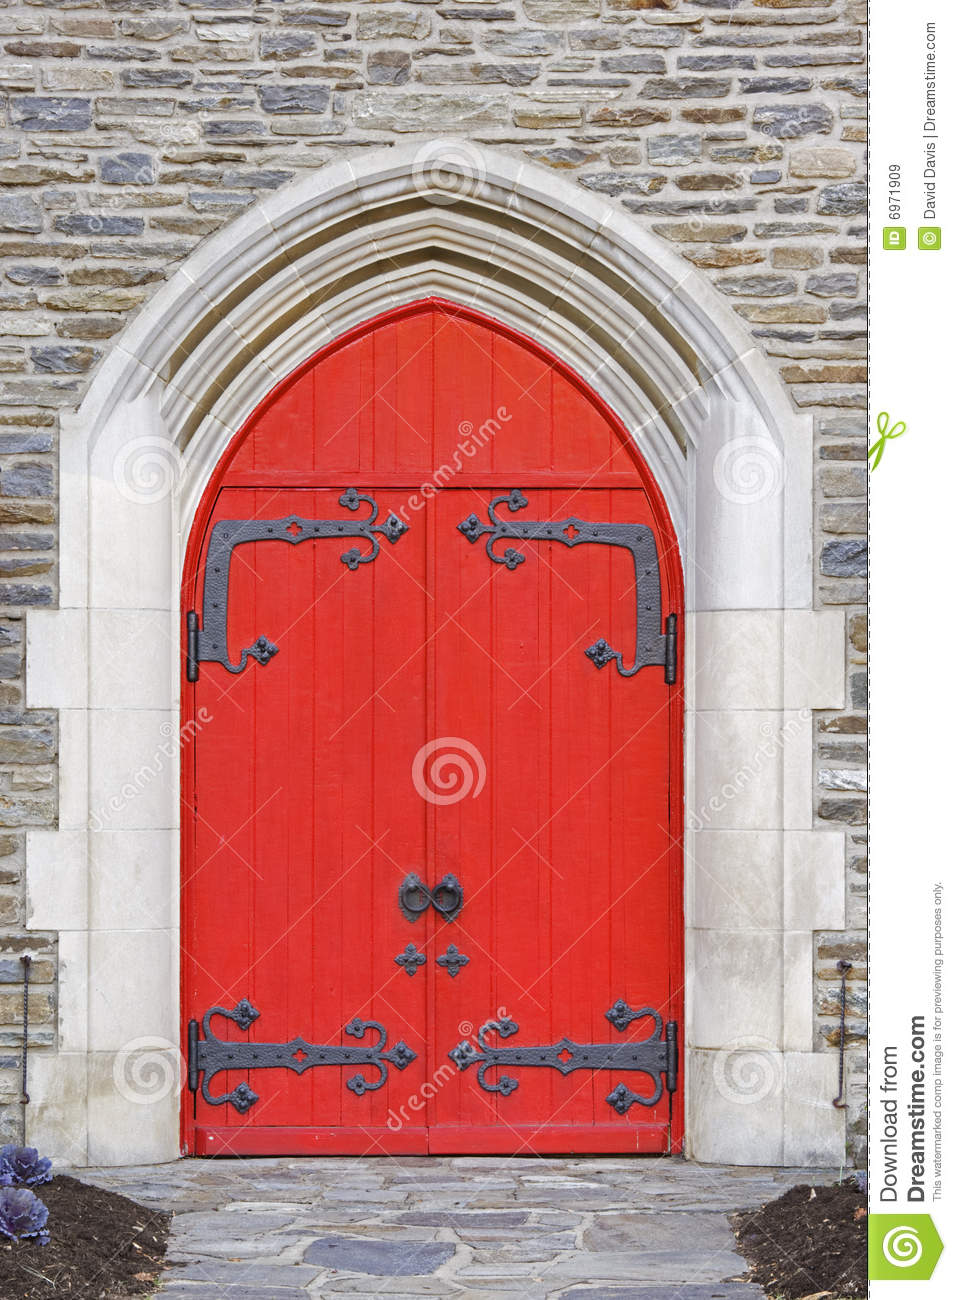 Red church doors on a old stone church.